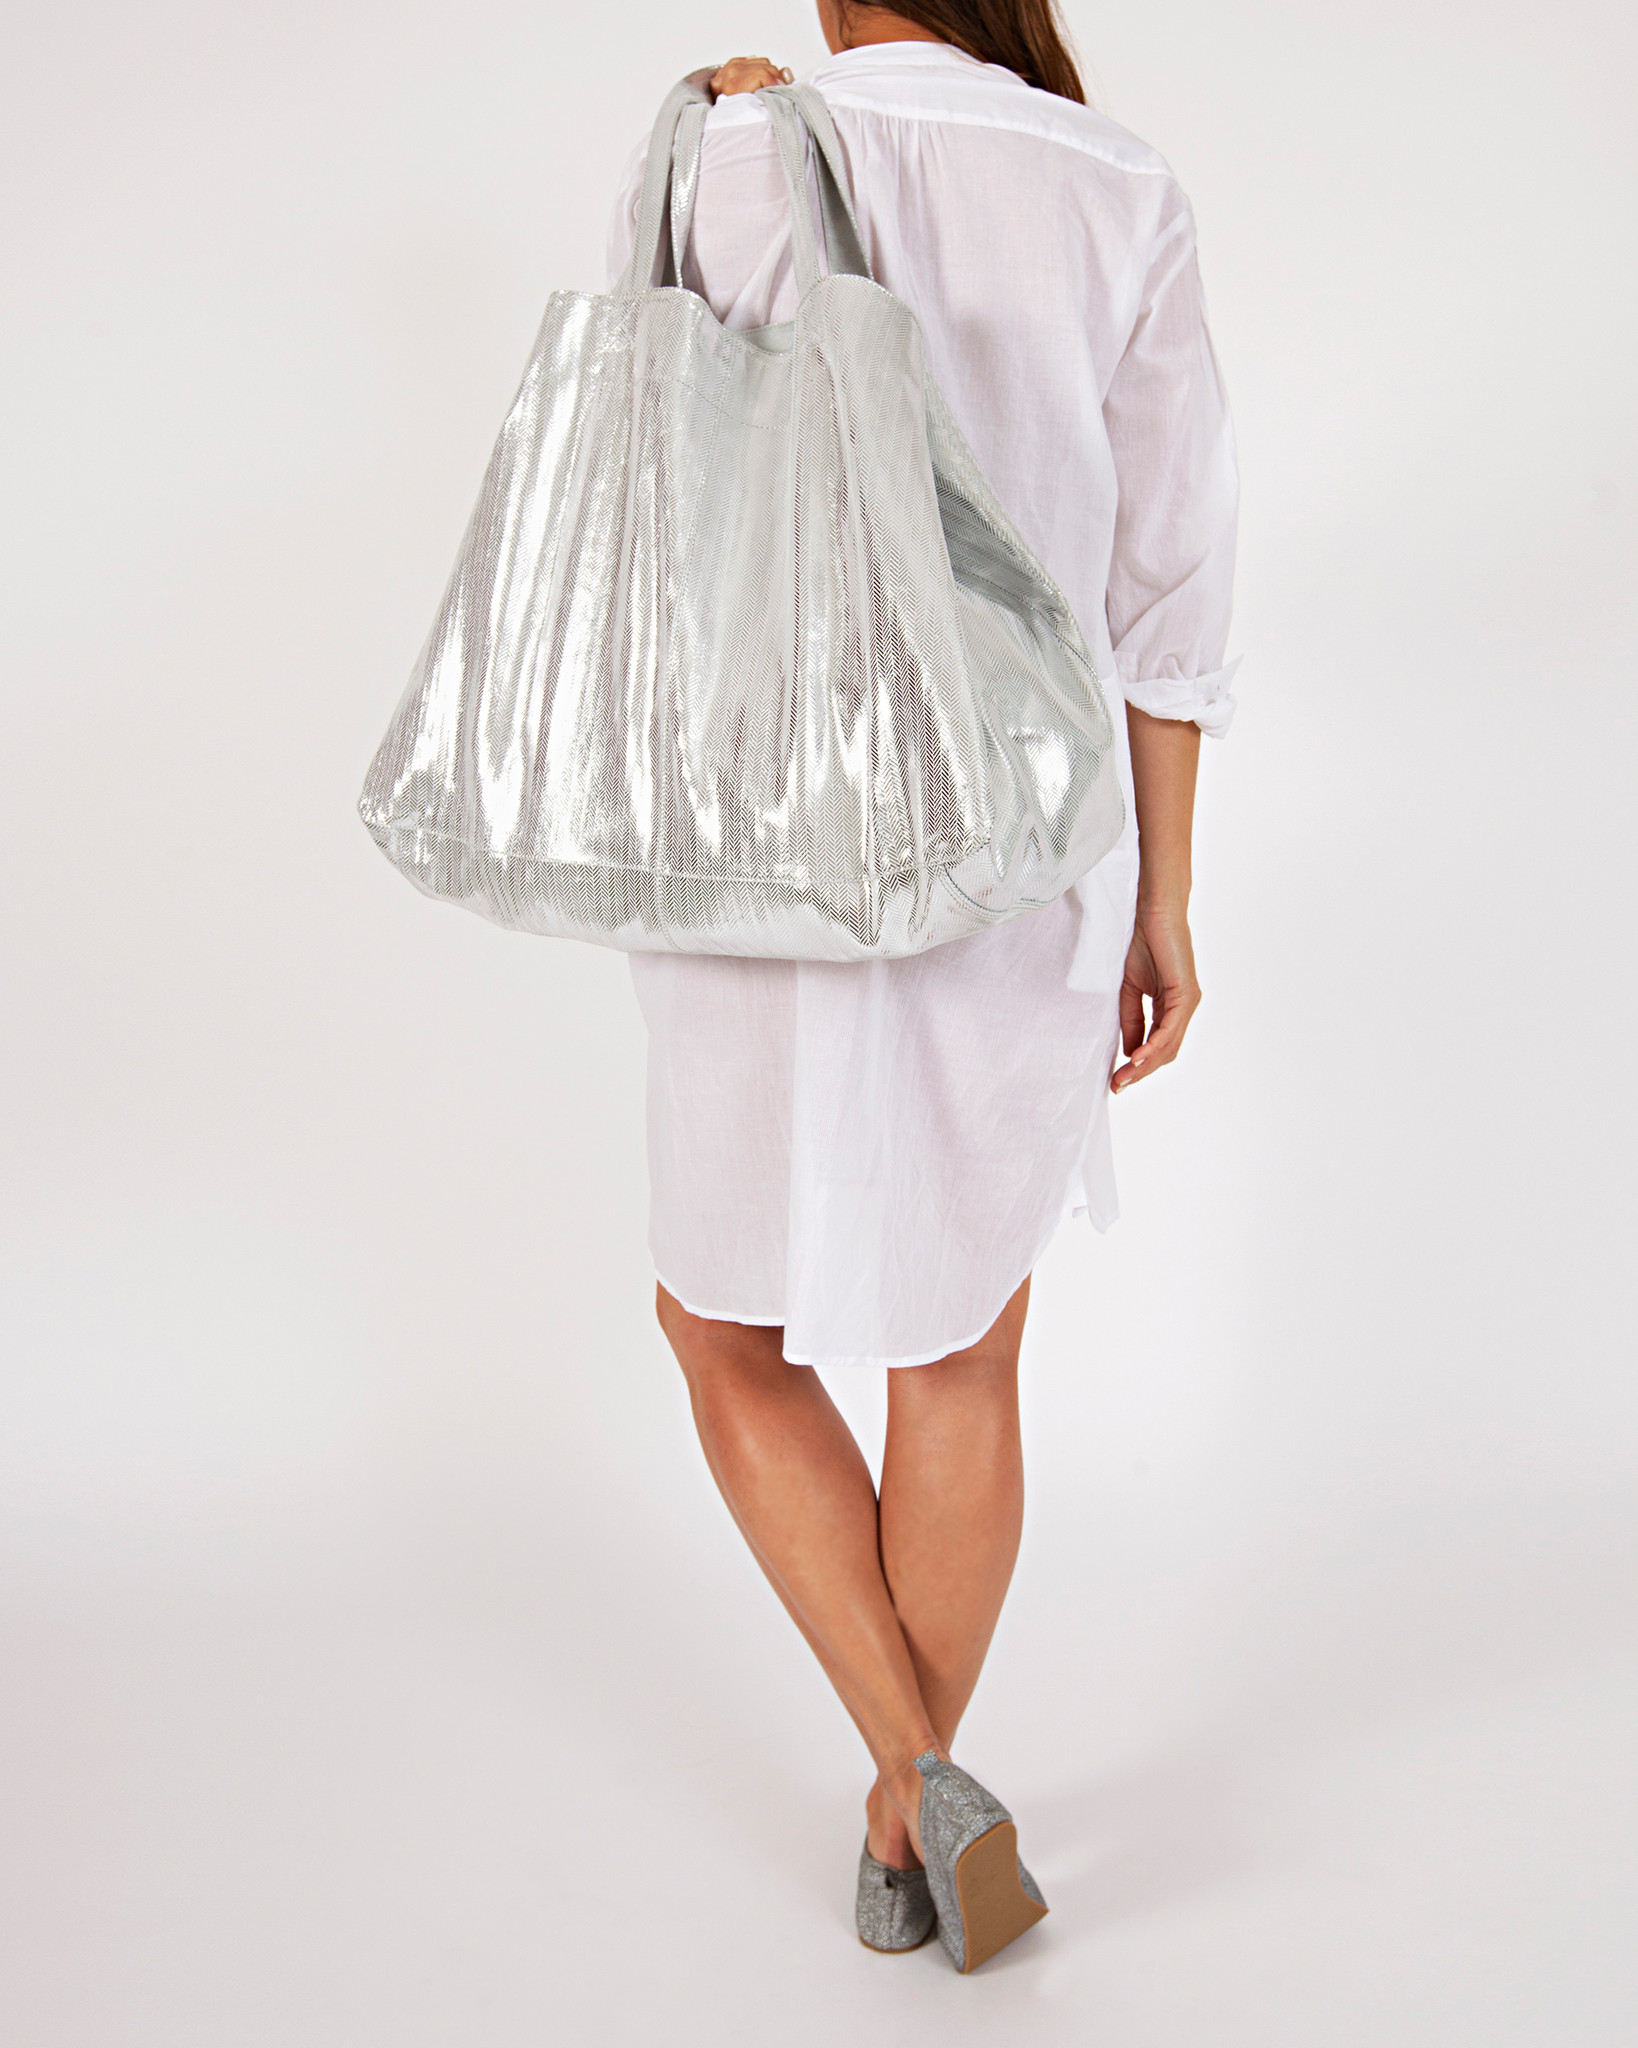 Leather Carry All Bag - Silver  $299.00  Available in 2 colours.  100% foiled cowhide leather unique herringbone metallic pattern soft, yet strong and durable leather includes inner pocket